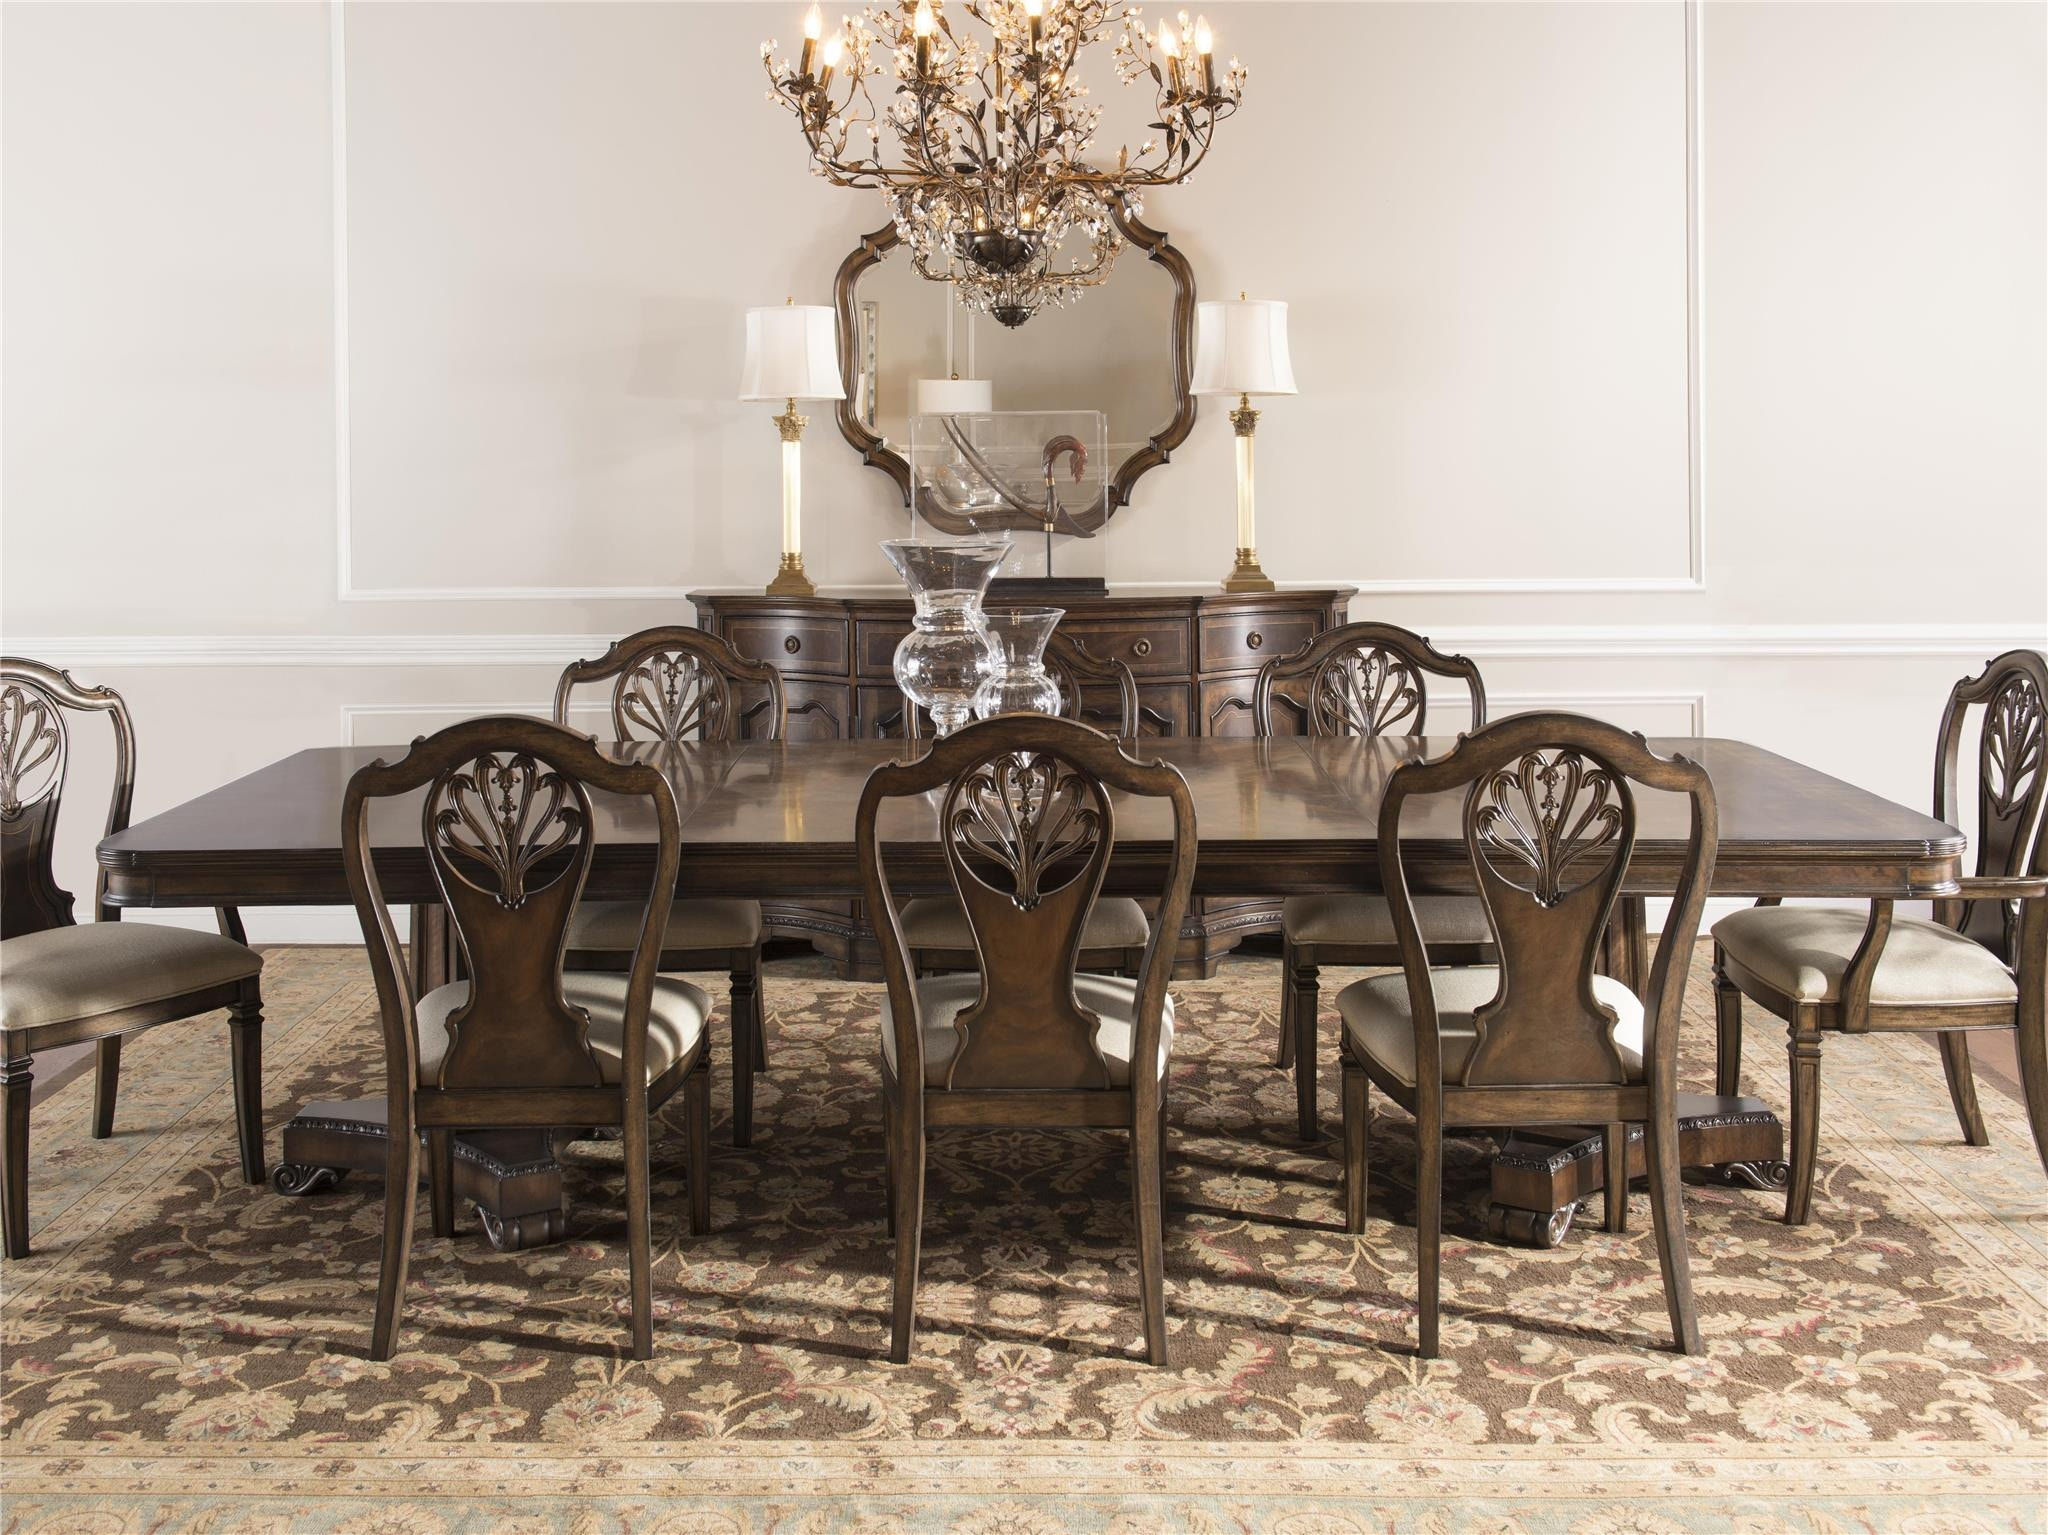 pedestal dining room table. Fine Furniture Design Double Pedestal Dining Table 1770-819-818 Room